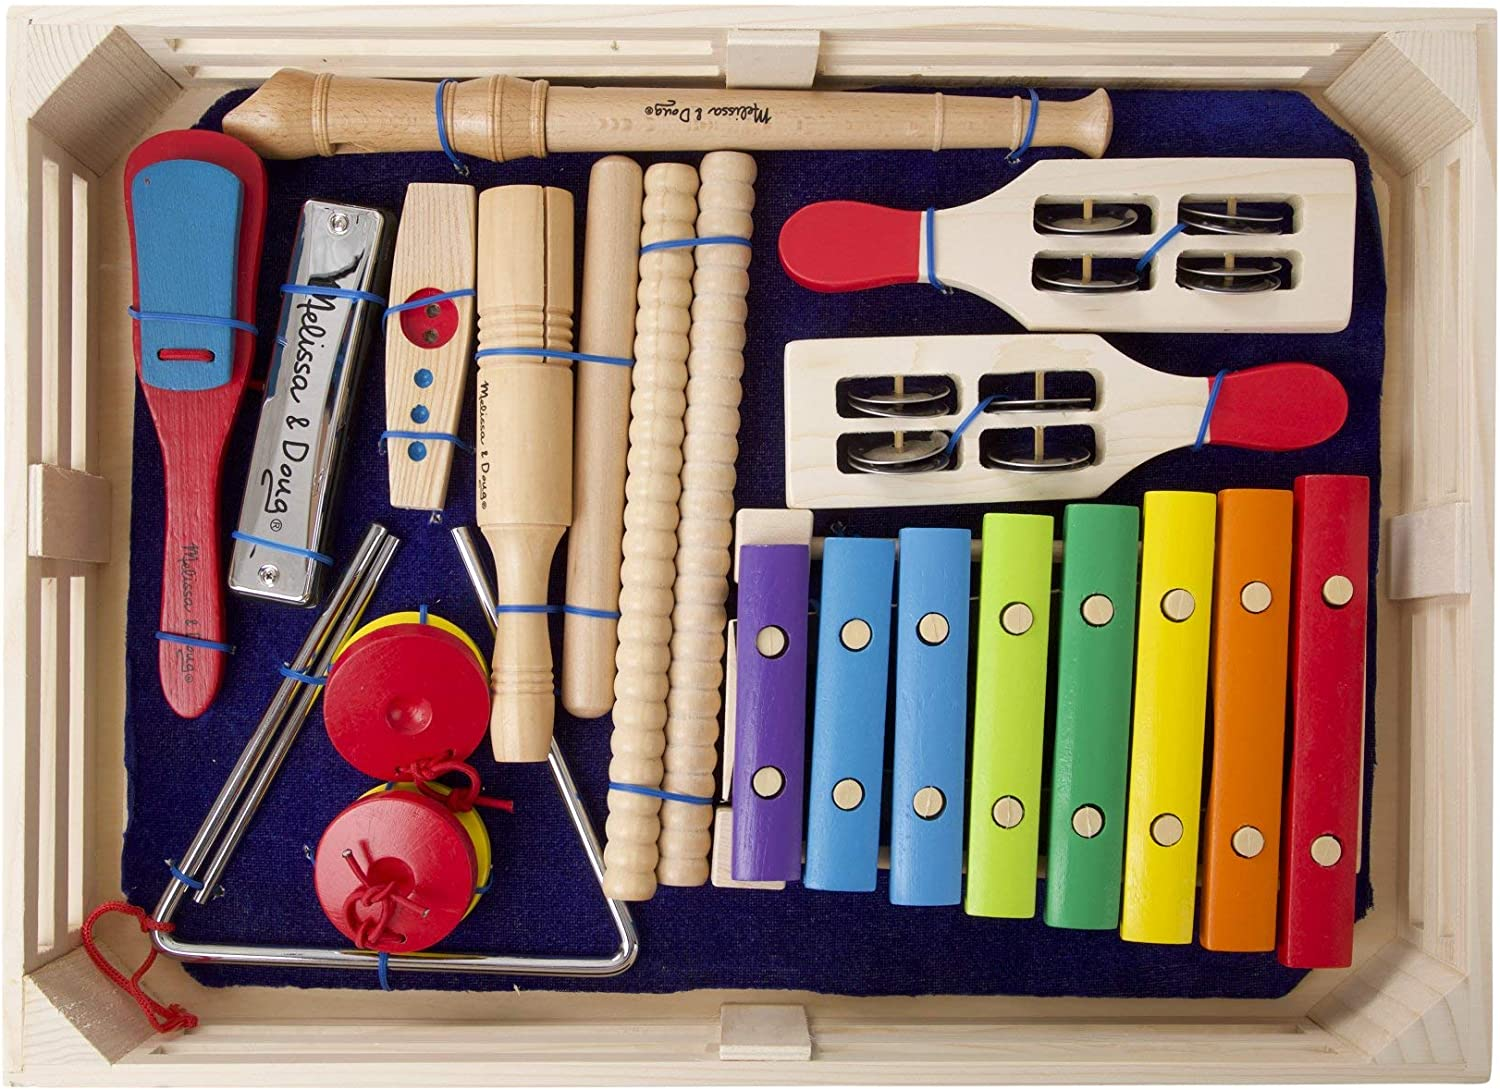 B00020V4Y4 Melissa & Doug Deluxe Band Set With Wooden Musical Instruments and Storage Case 81vYdaVhiTL